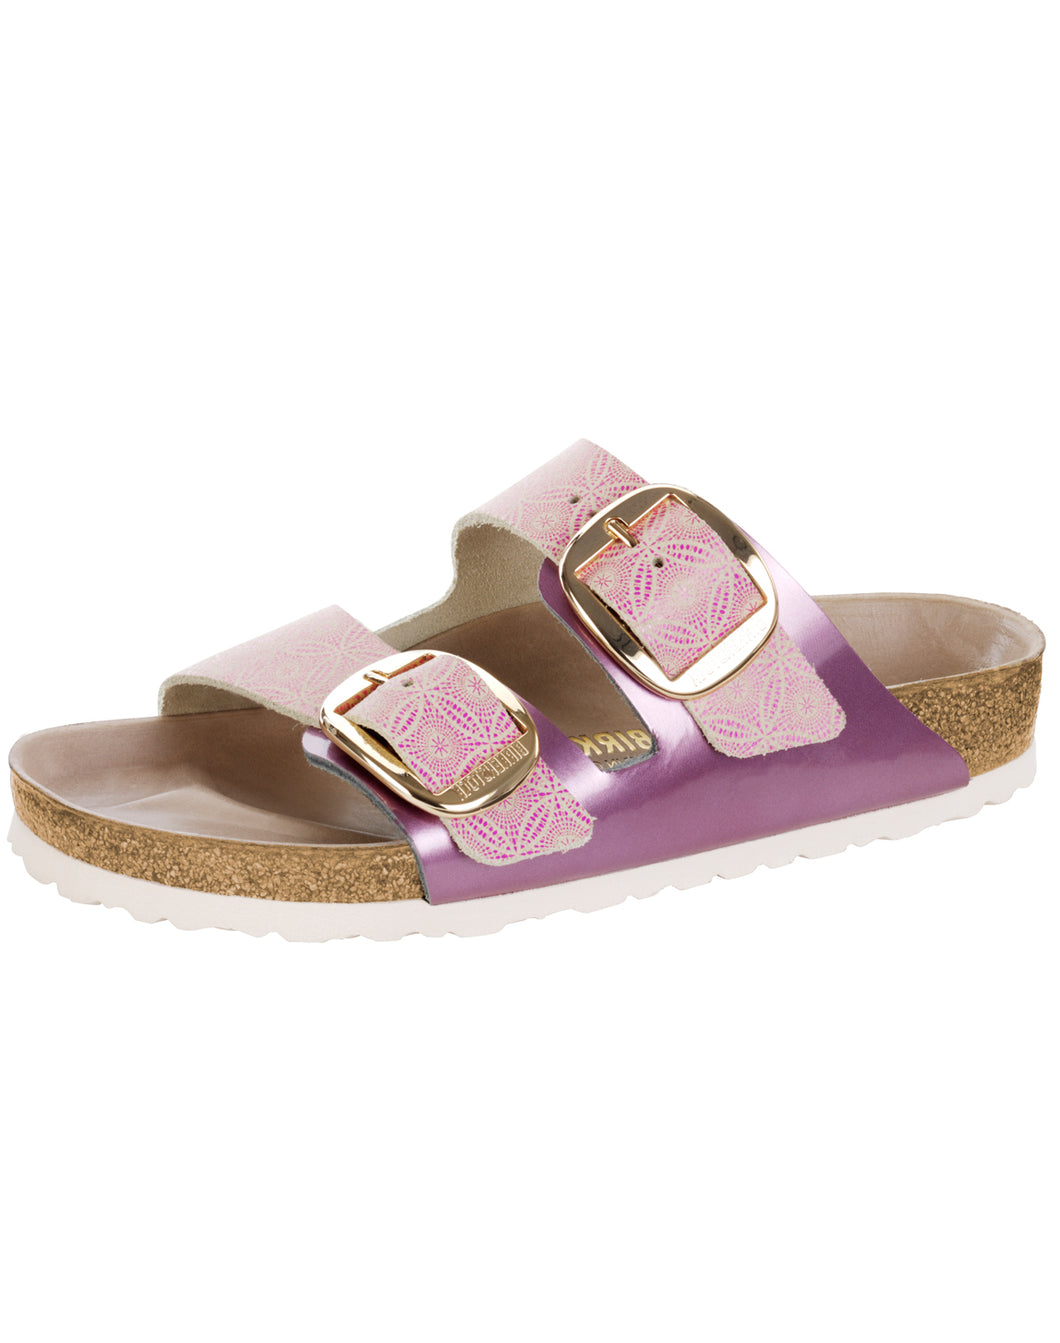 BIRKENSTOCK ARIZONA BIG BUCKLE CERAMIC ROSE NL REGULAR